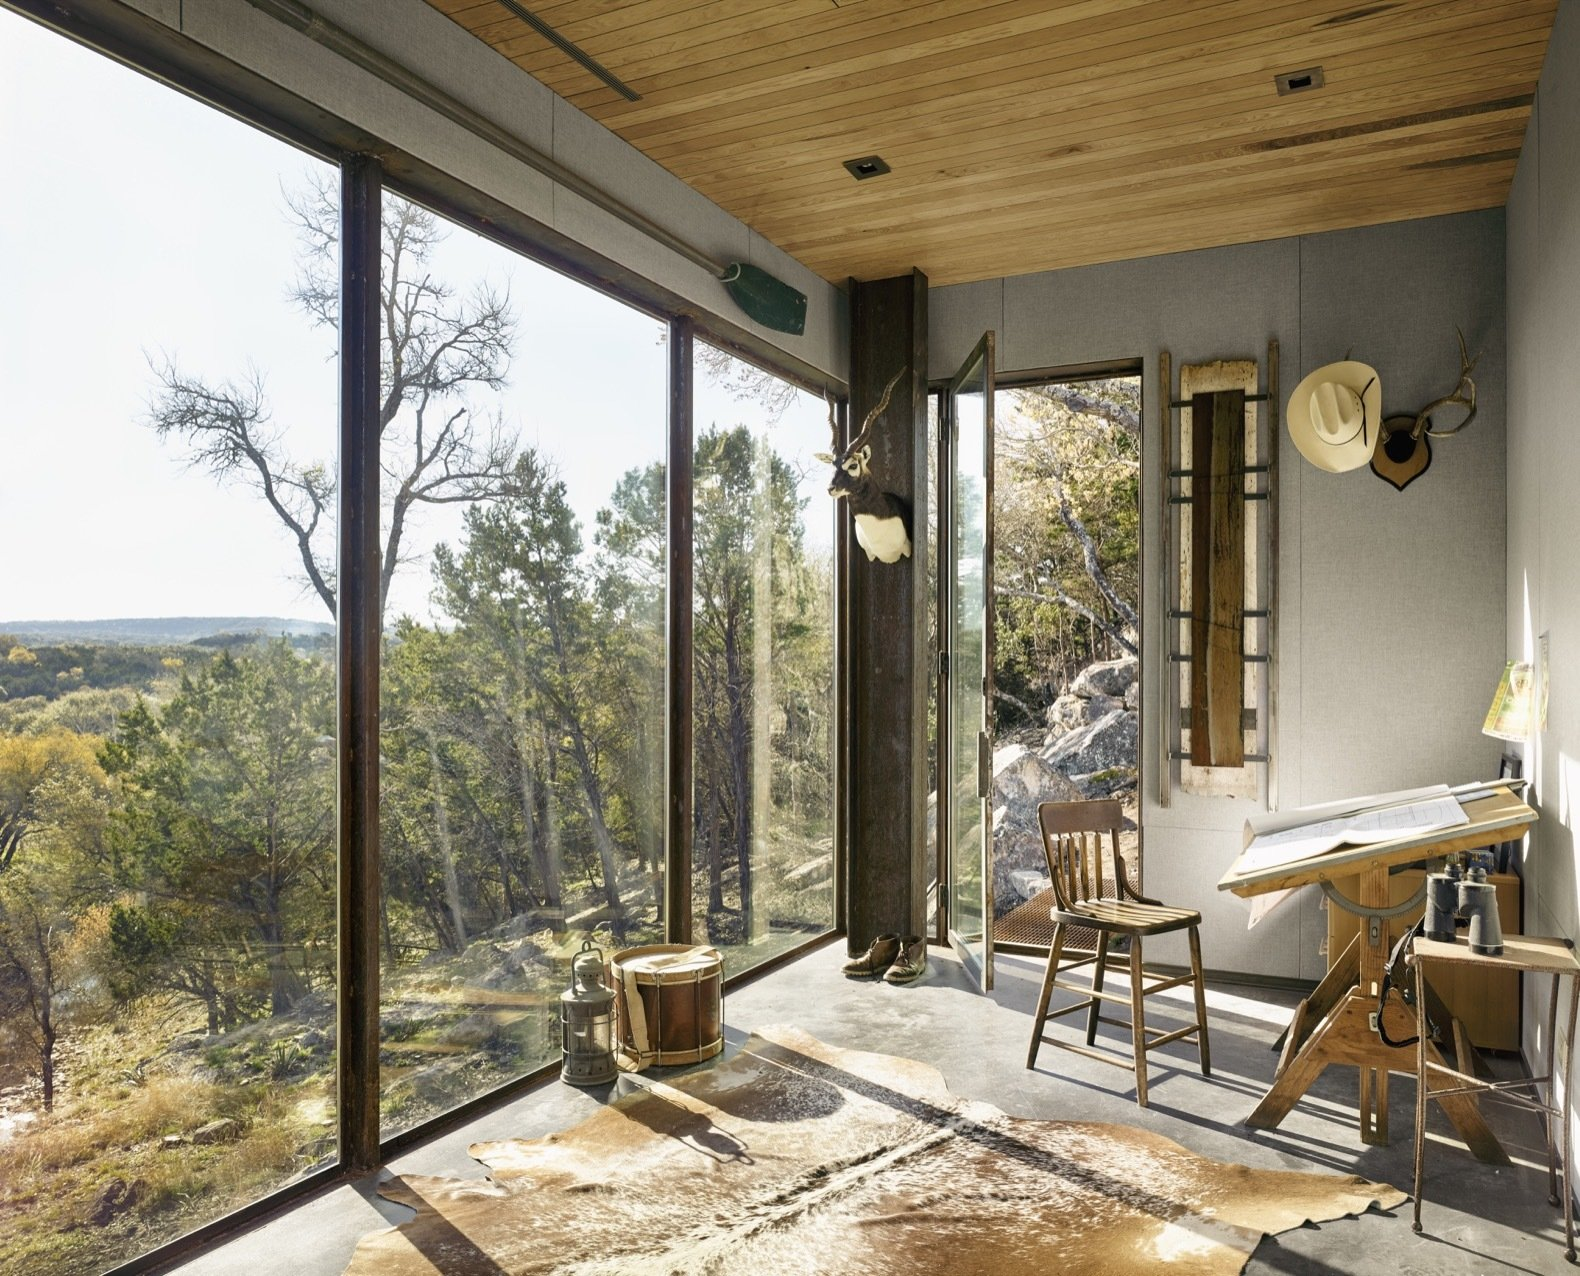 """Office, Study Room Type, Chair, Concrete Floor, and Desk The interiors were designed with a """"minimal and rustic Texas feel,""""  say the architects. The ceiling is tongue-and-groove pecan wood.  Photo 5 of 12 in An Award-Winning Writing Studio Hides Quietly in Texas"""